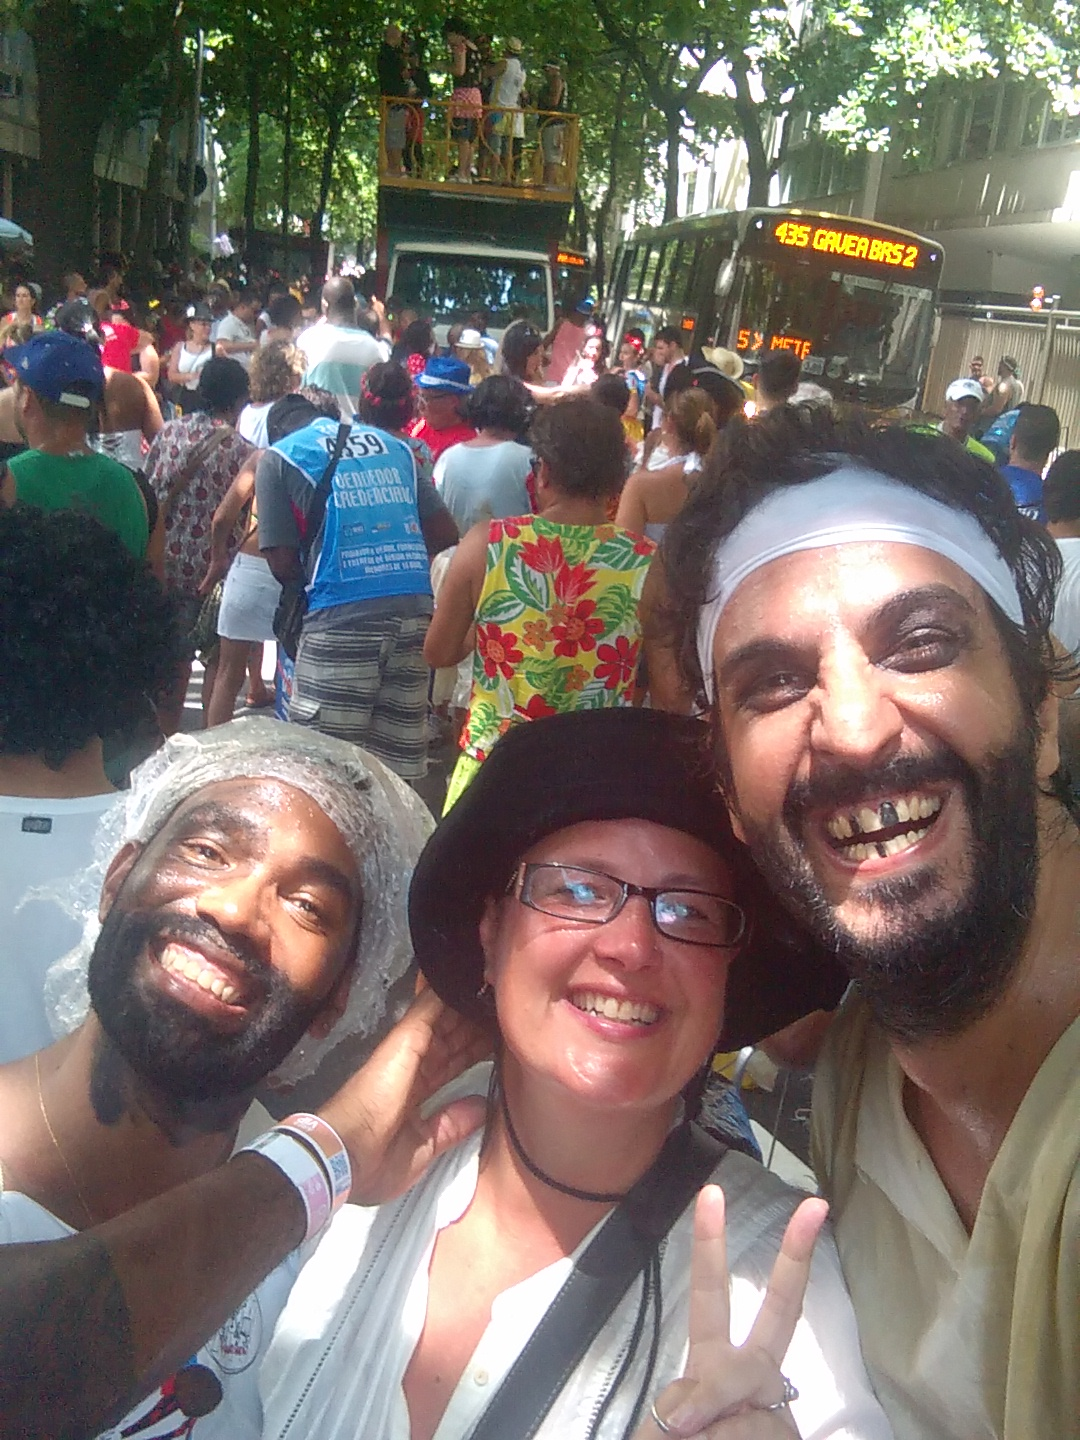 """Cariocas (people from Rio de Janeiro) dressing as """"homeless"""" during carnival"""